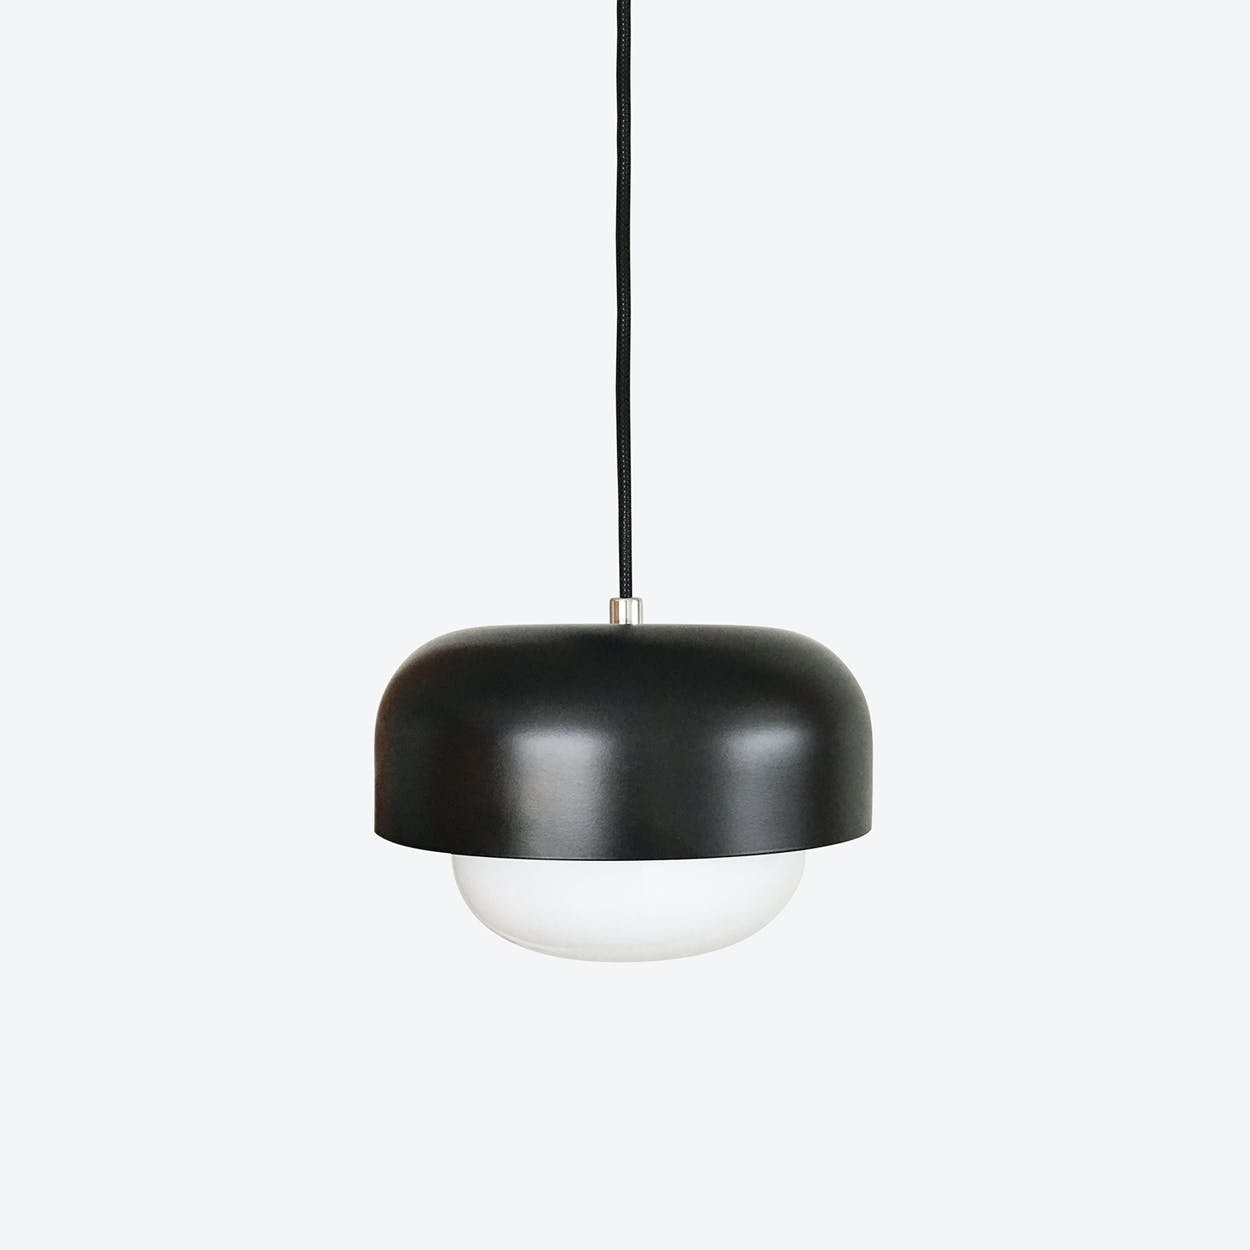 Haipot Pendant Lamp in Yang Matt Black